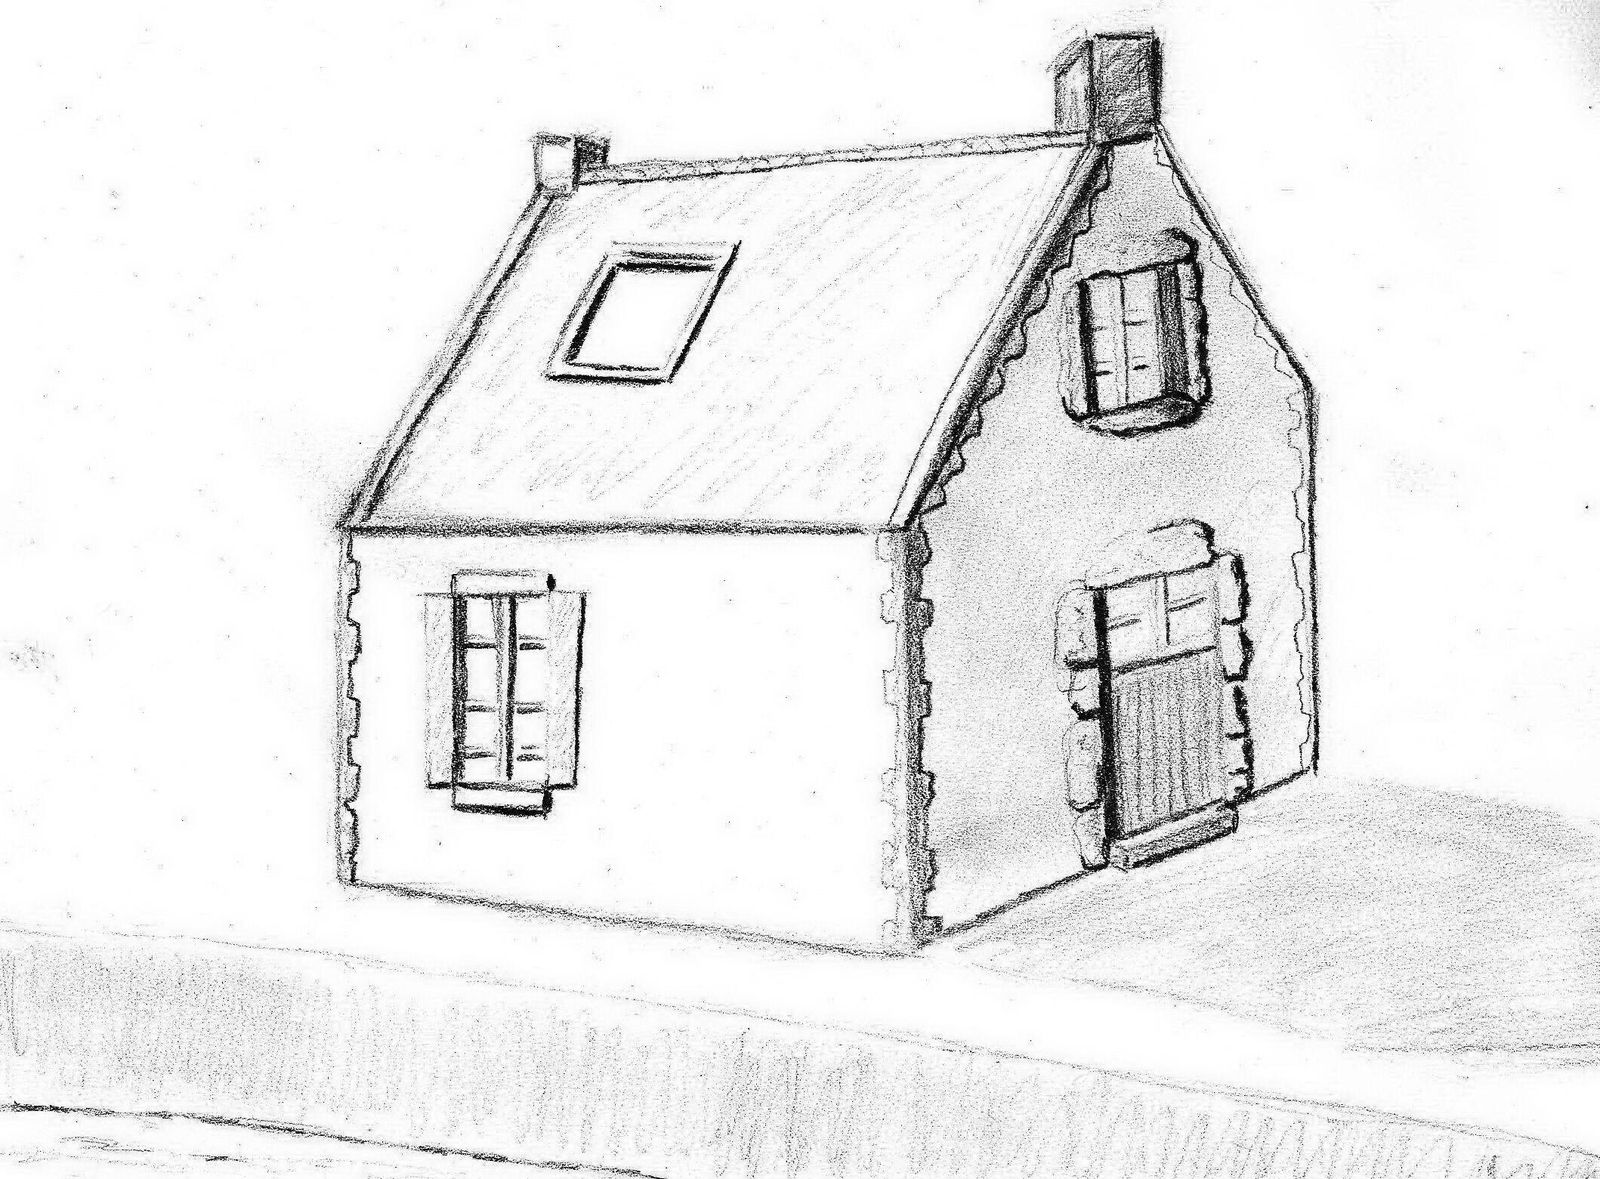 Dessins maison des id es novatrices sur la conception et for Dessin maison